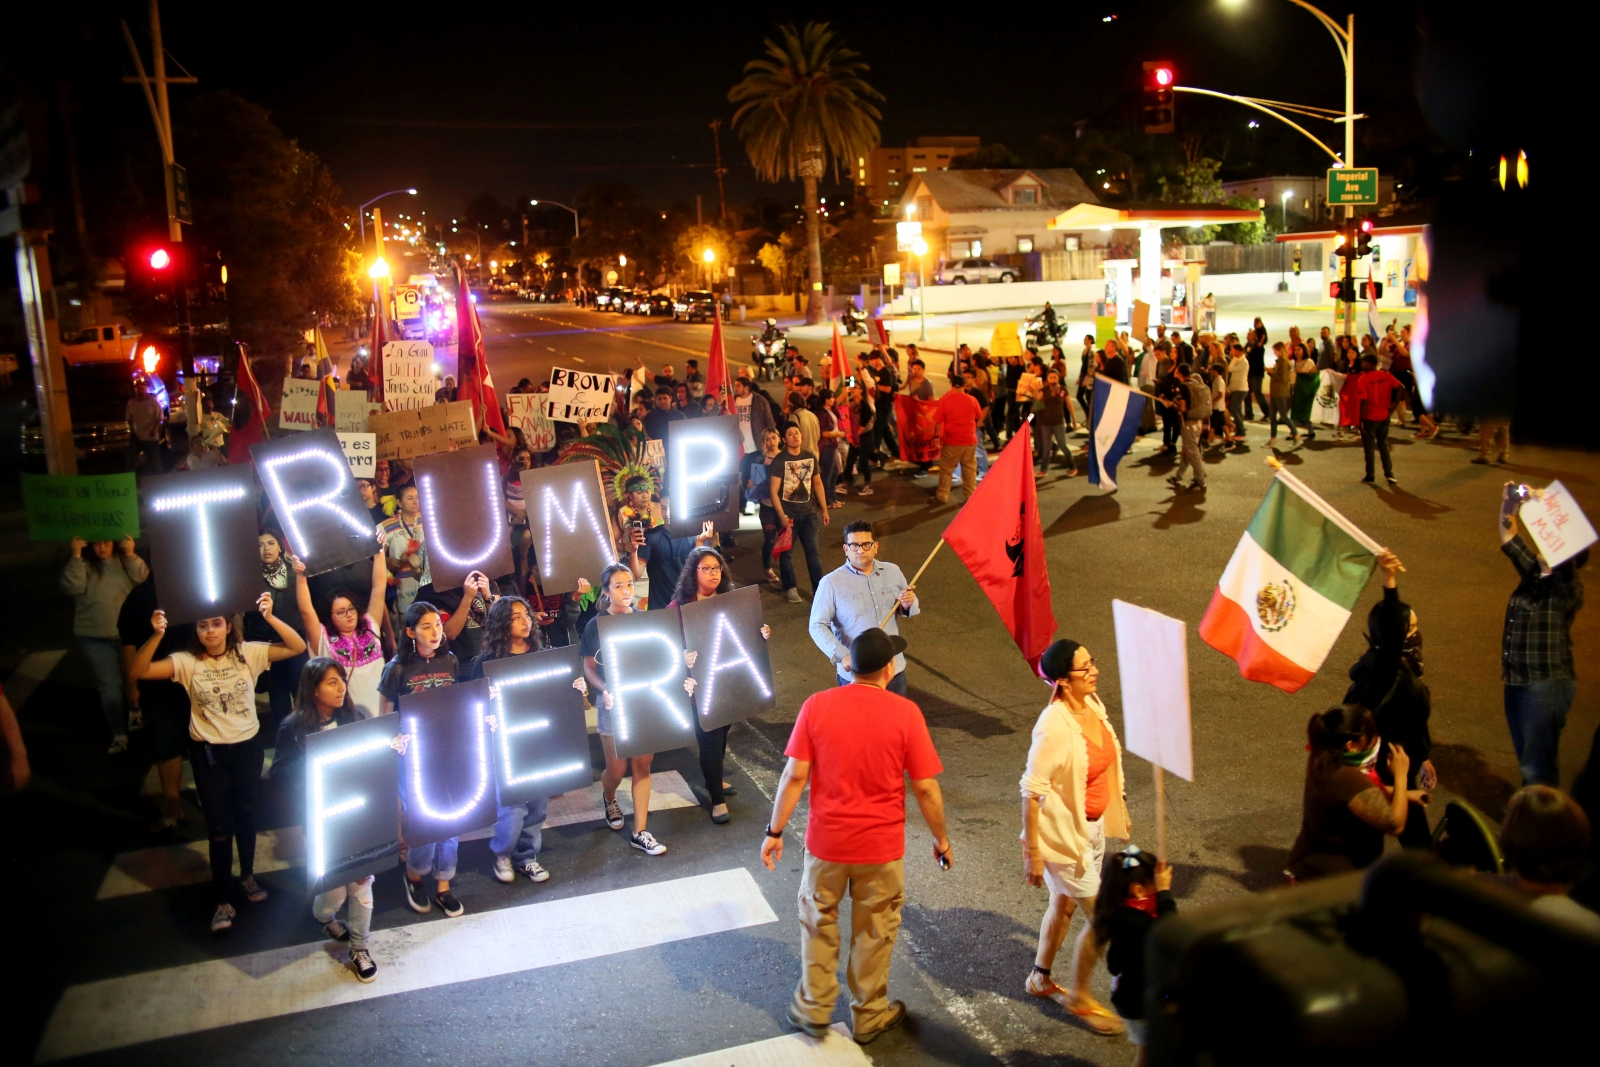 Anti-Trump protests continue for 3rd night, but mostly remain peaceful